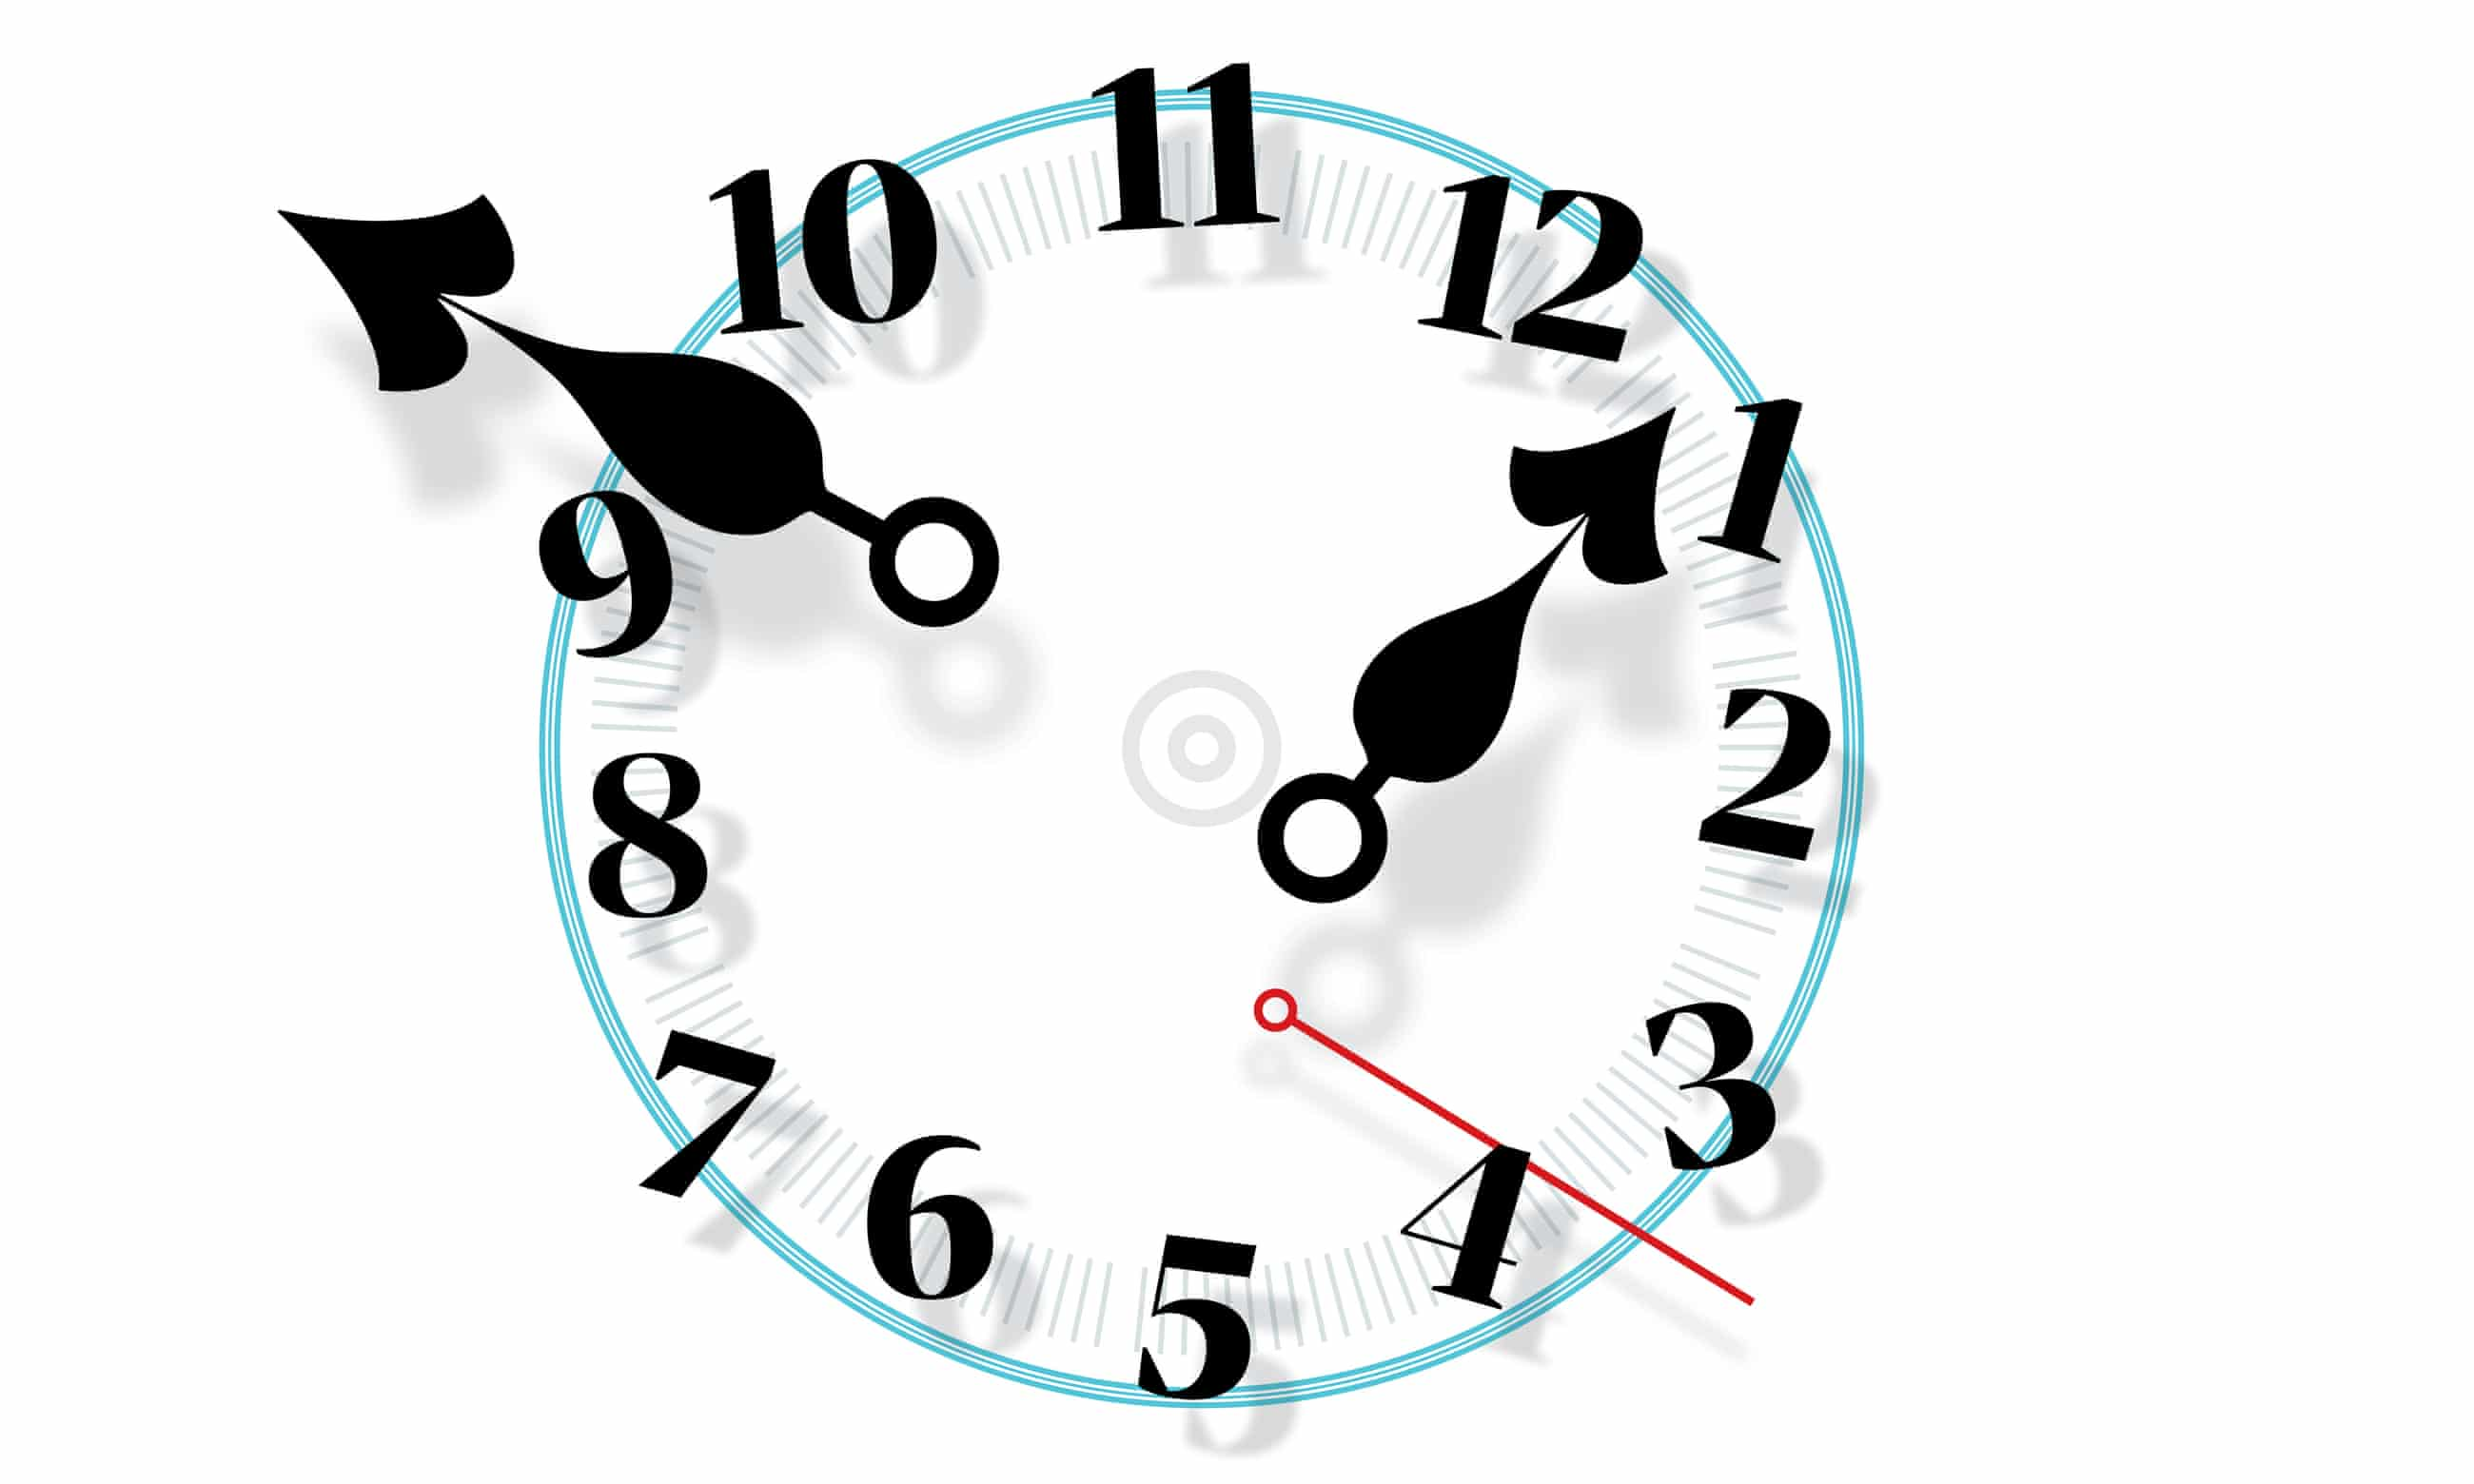 When do the clocks change around the world? And why?